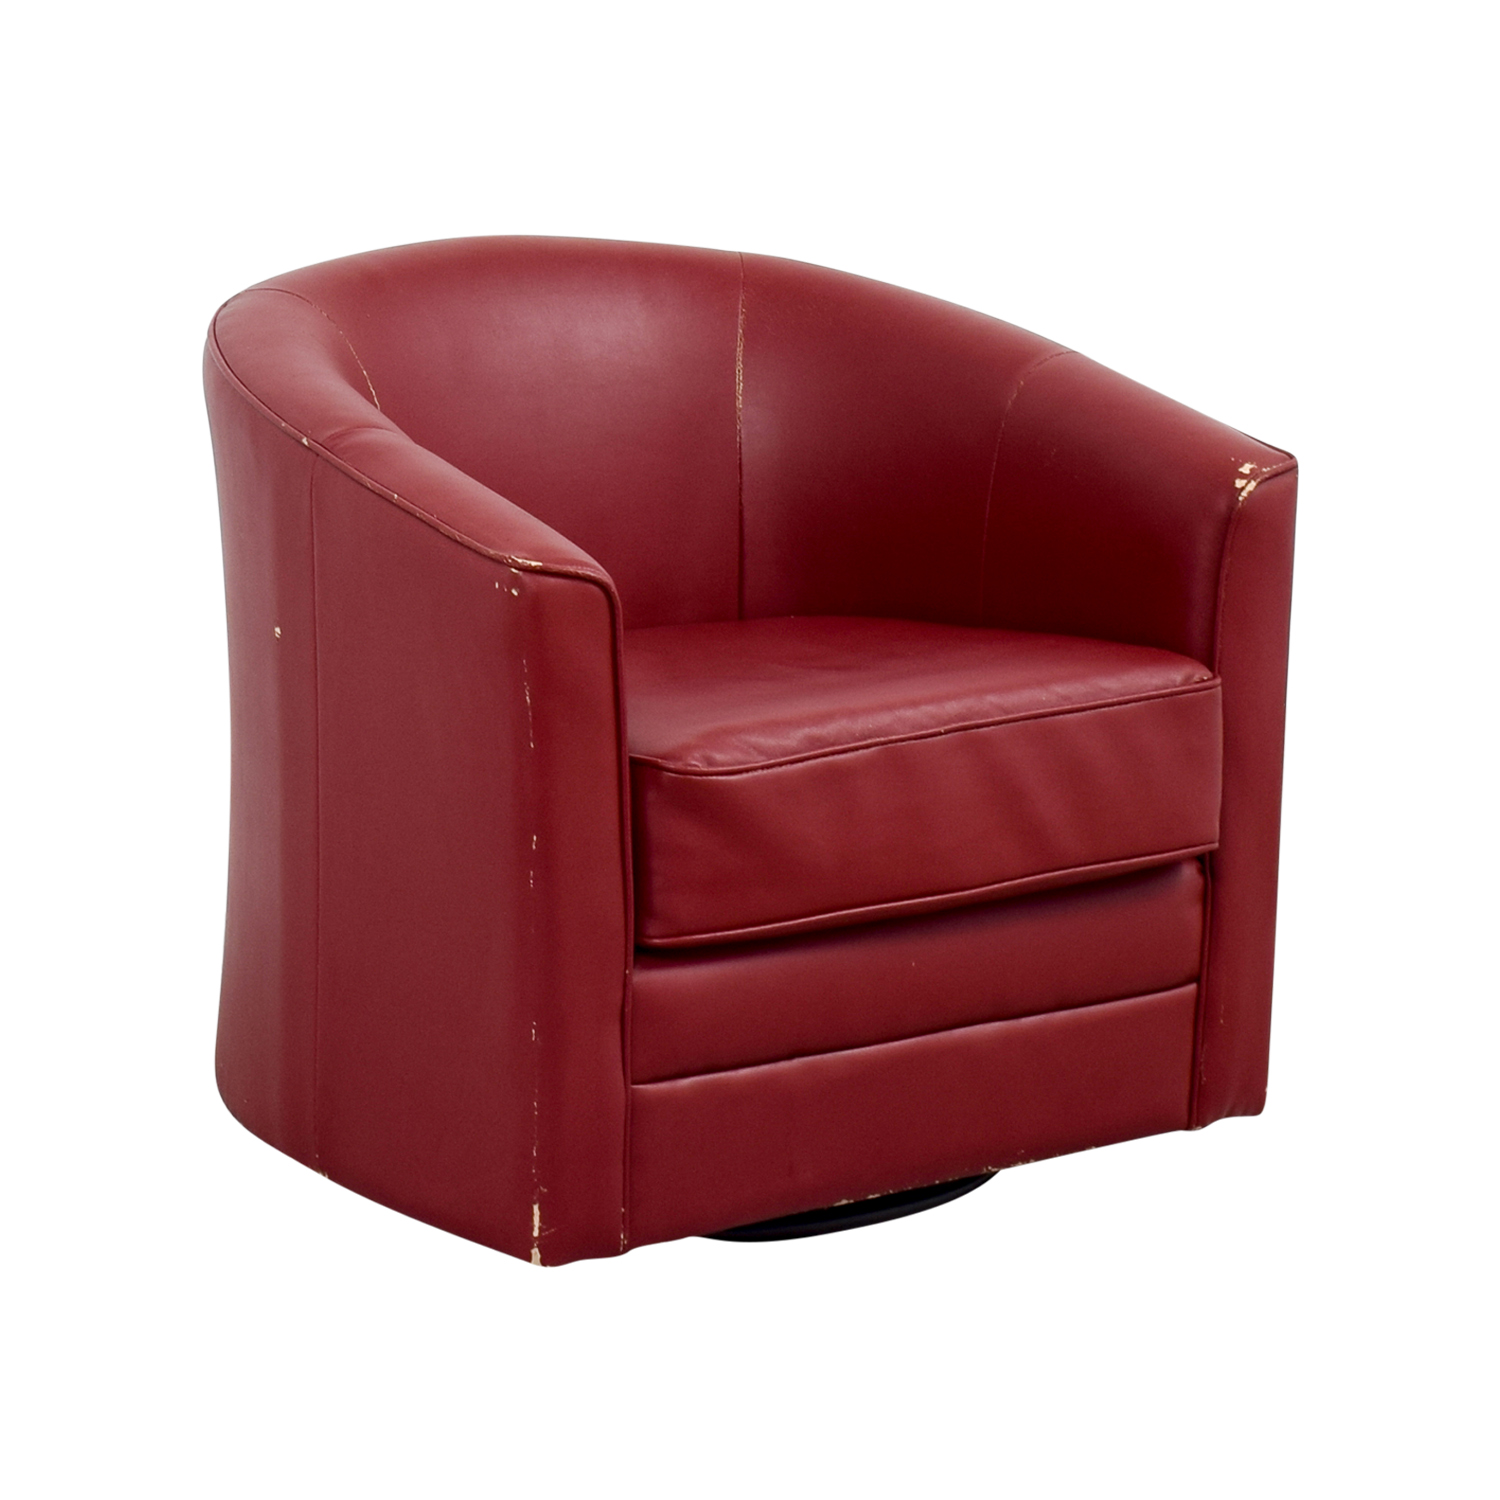 90 OFF  Bobs Furniture Bobs Furniture Red Leather